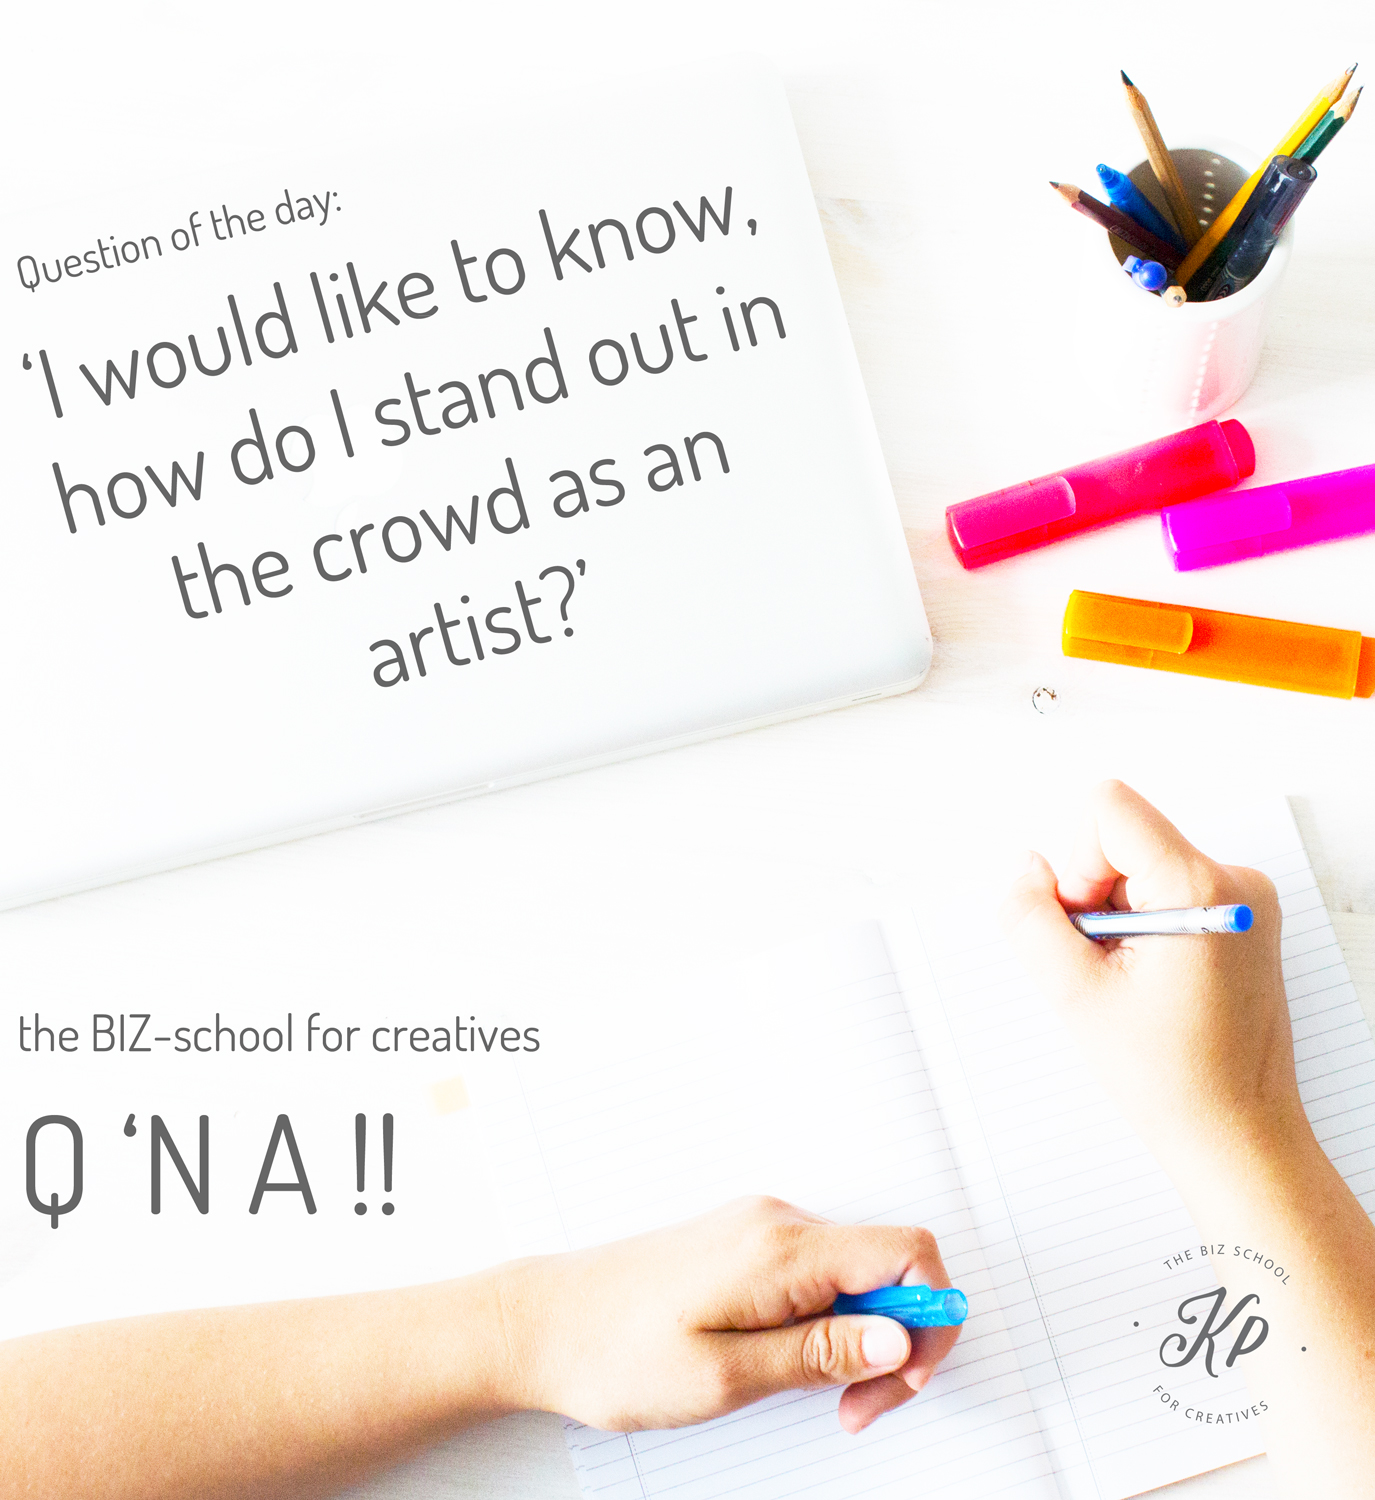 the BIZ-school for creatives Q 'N A, Question of the day: 'I would like to know, how do I stand out in the crowd as an artist?' Read the full answer at www.kerstinpressler.com